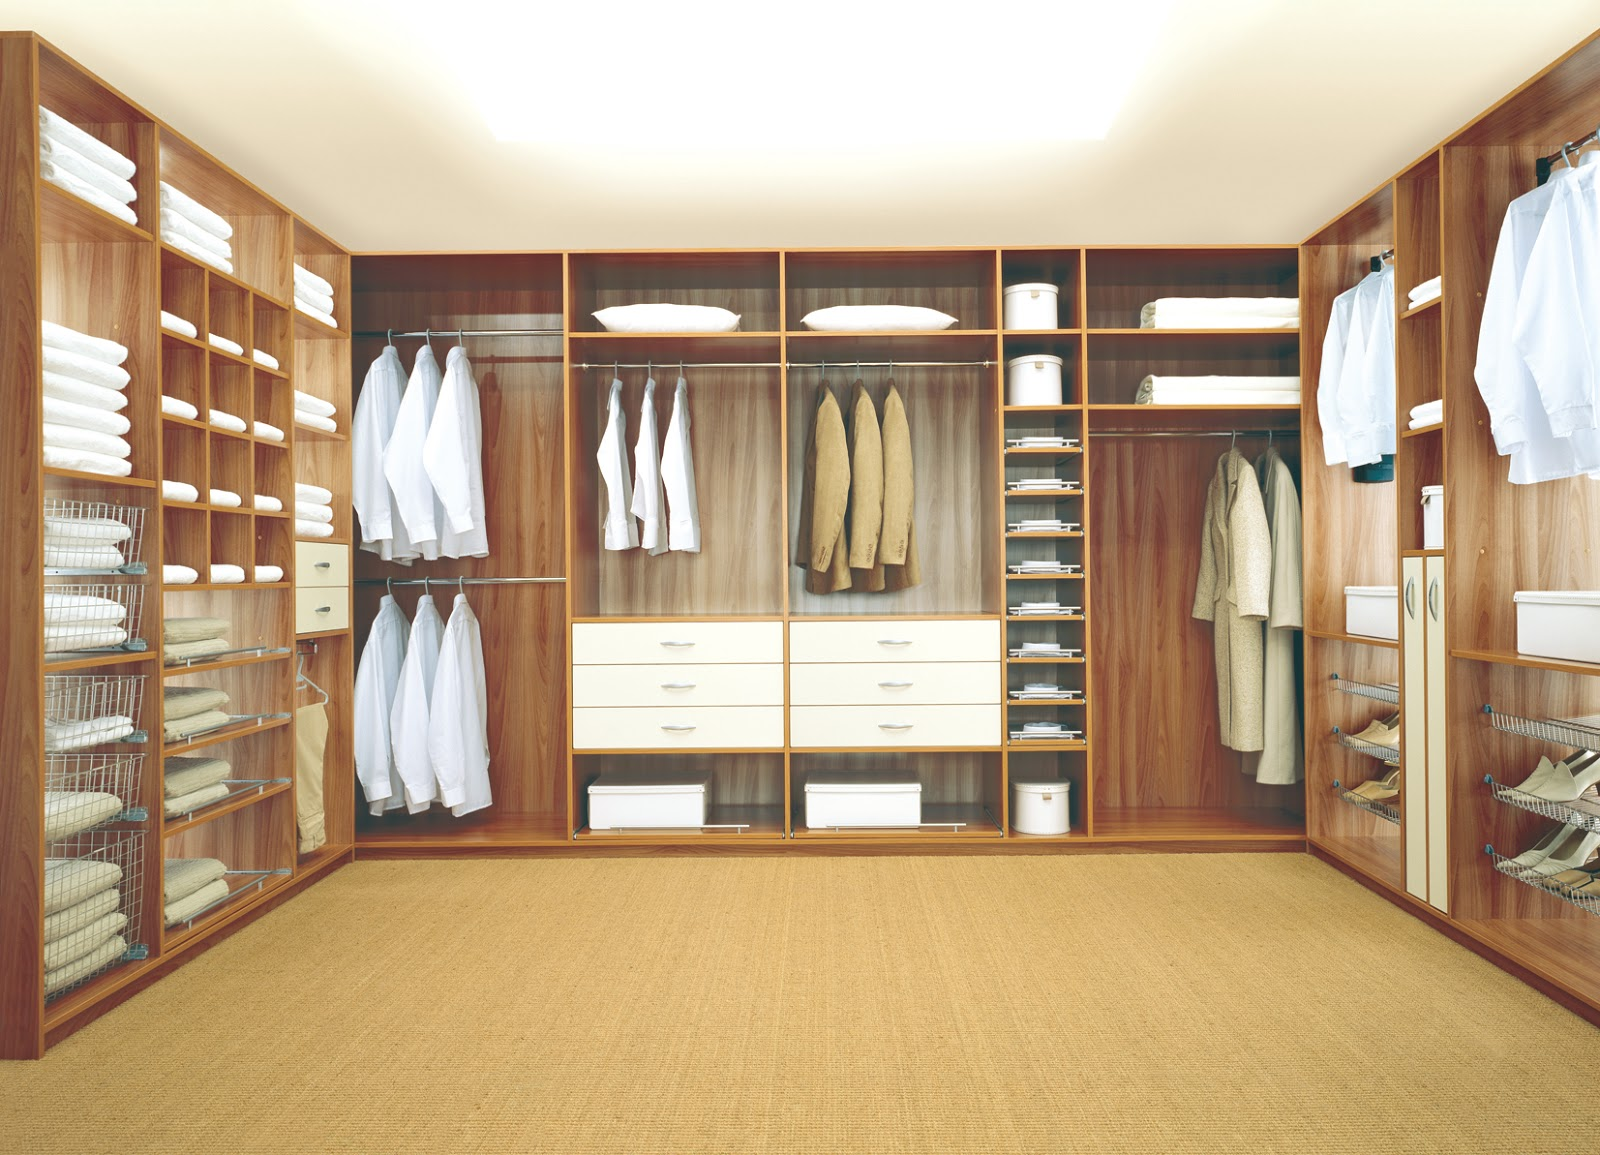 Custom built cabinets in uae walk-in closets wooden cabinets.